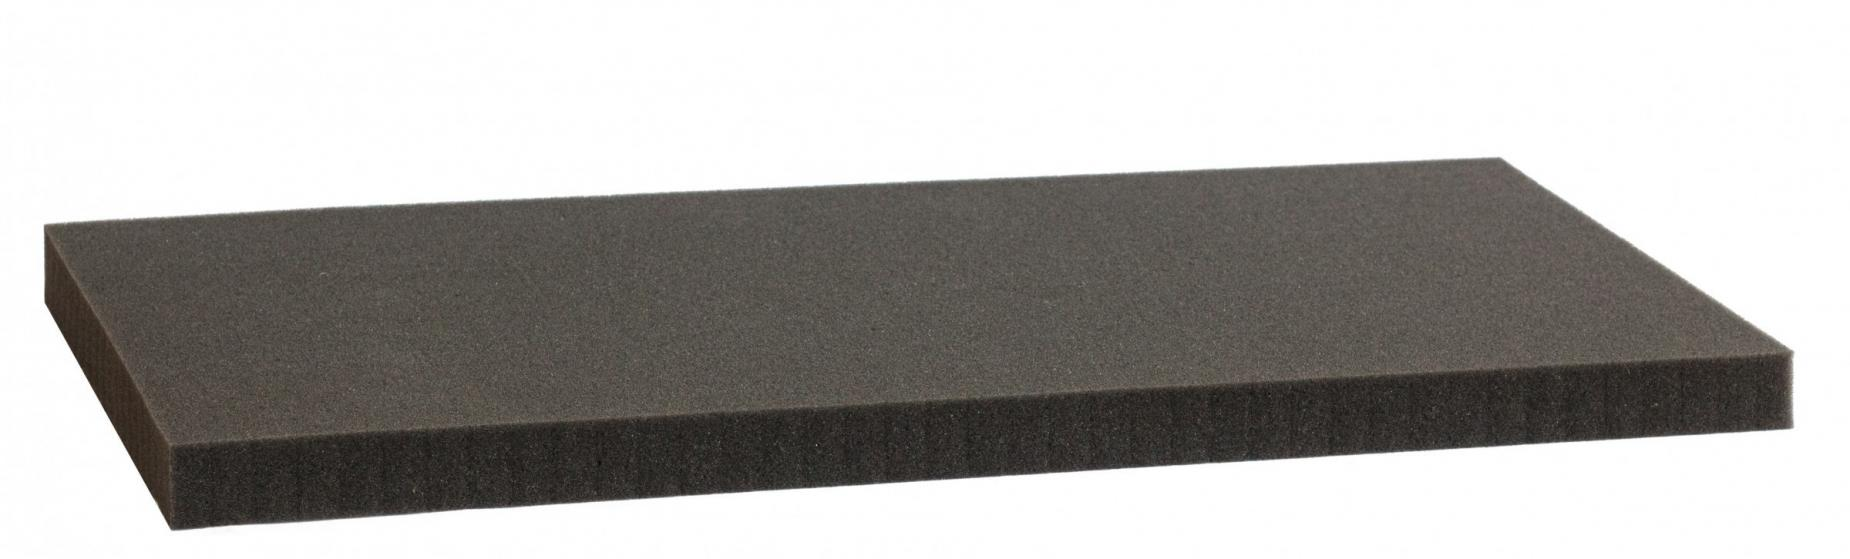 750 mm x 550 mm x 20 mm - Raster 15 mm - Pick and Pluck / Pre-Cubed foam tray